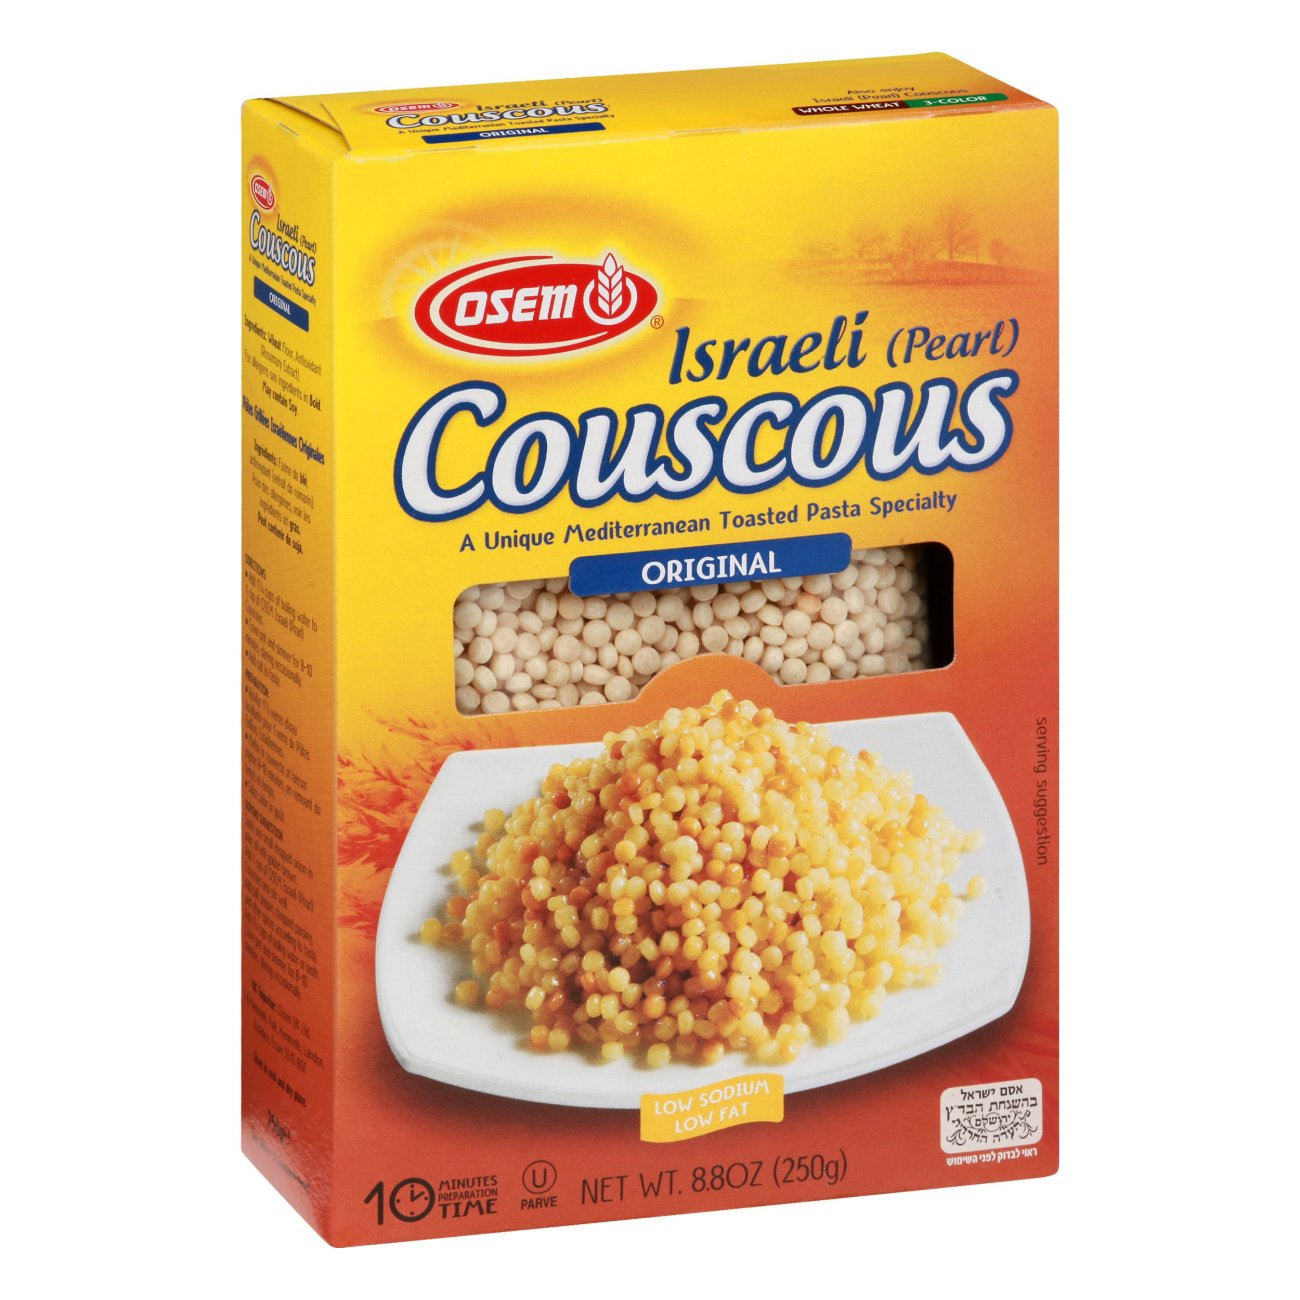 Osem Kosher Israeli Pearl Couscous Shop Pasta At H E B